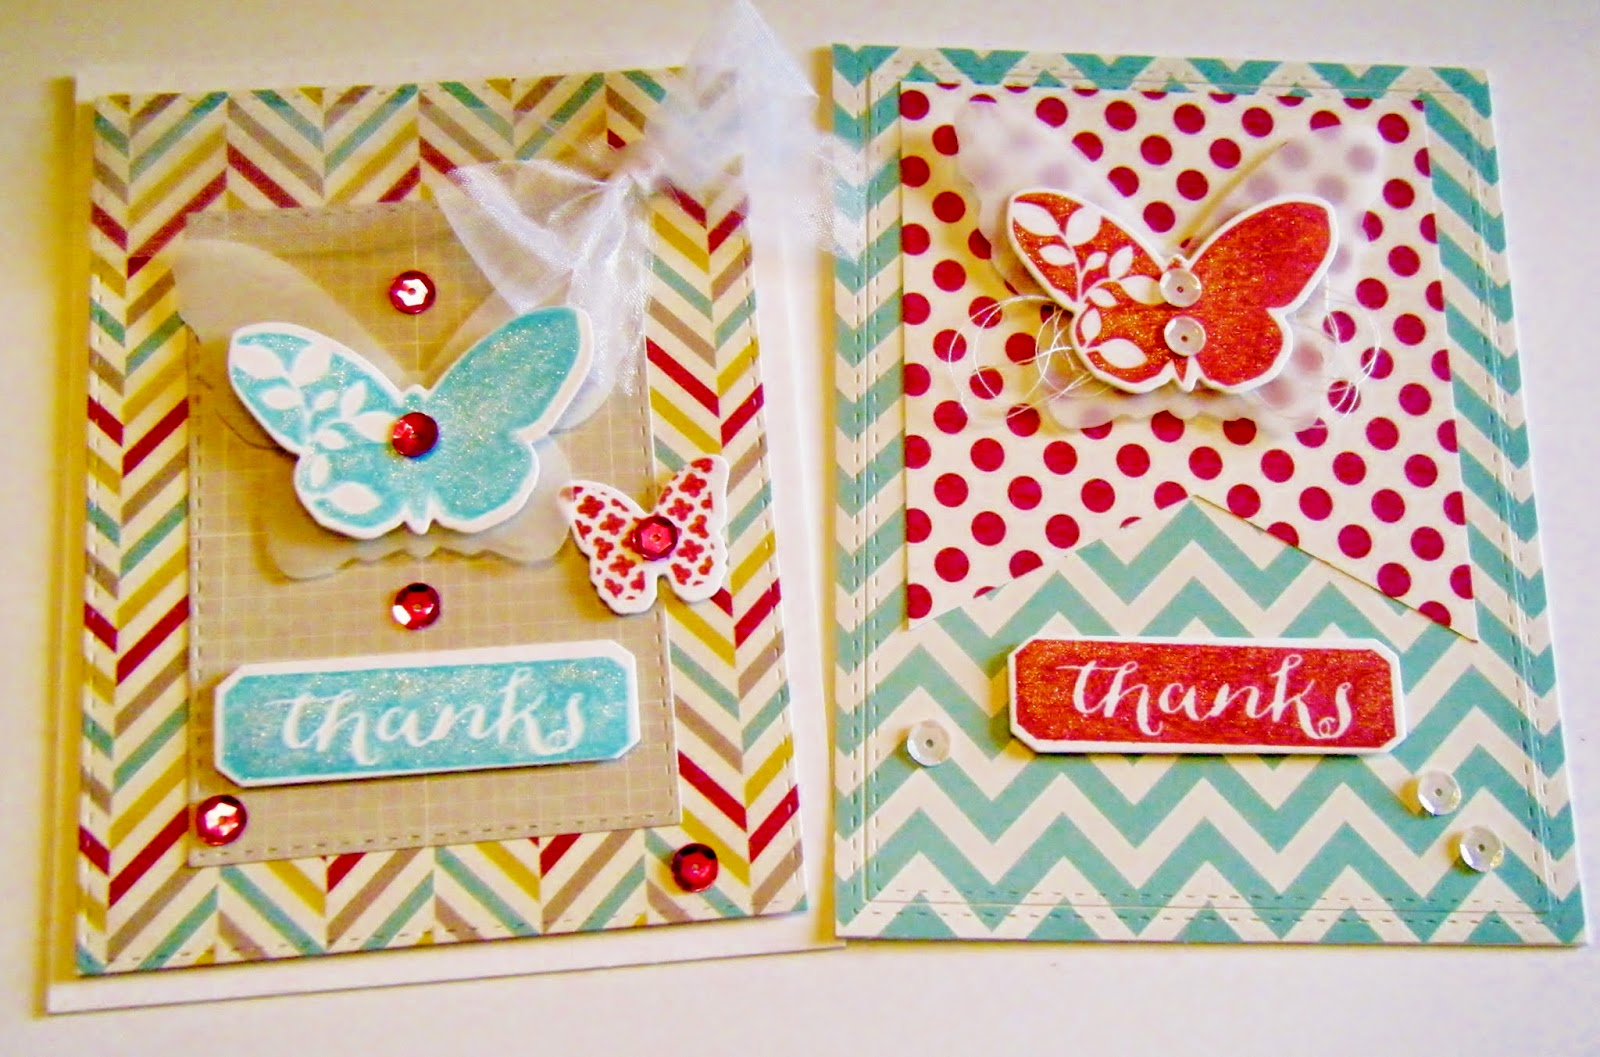 How To Make Friendship Cards Part - 24: I Have A Few Butterfly Thank You Cards To Share I Made Using The Simon Says  Die And Stamp Friendship Butterflies Pure Sunshine Set. Here They Are: